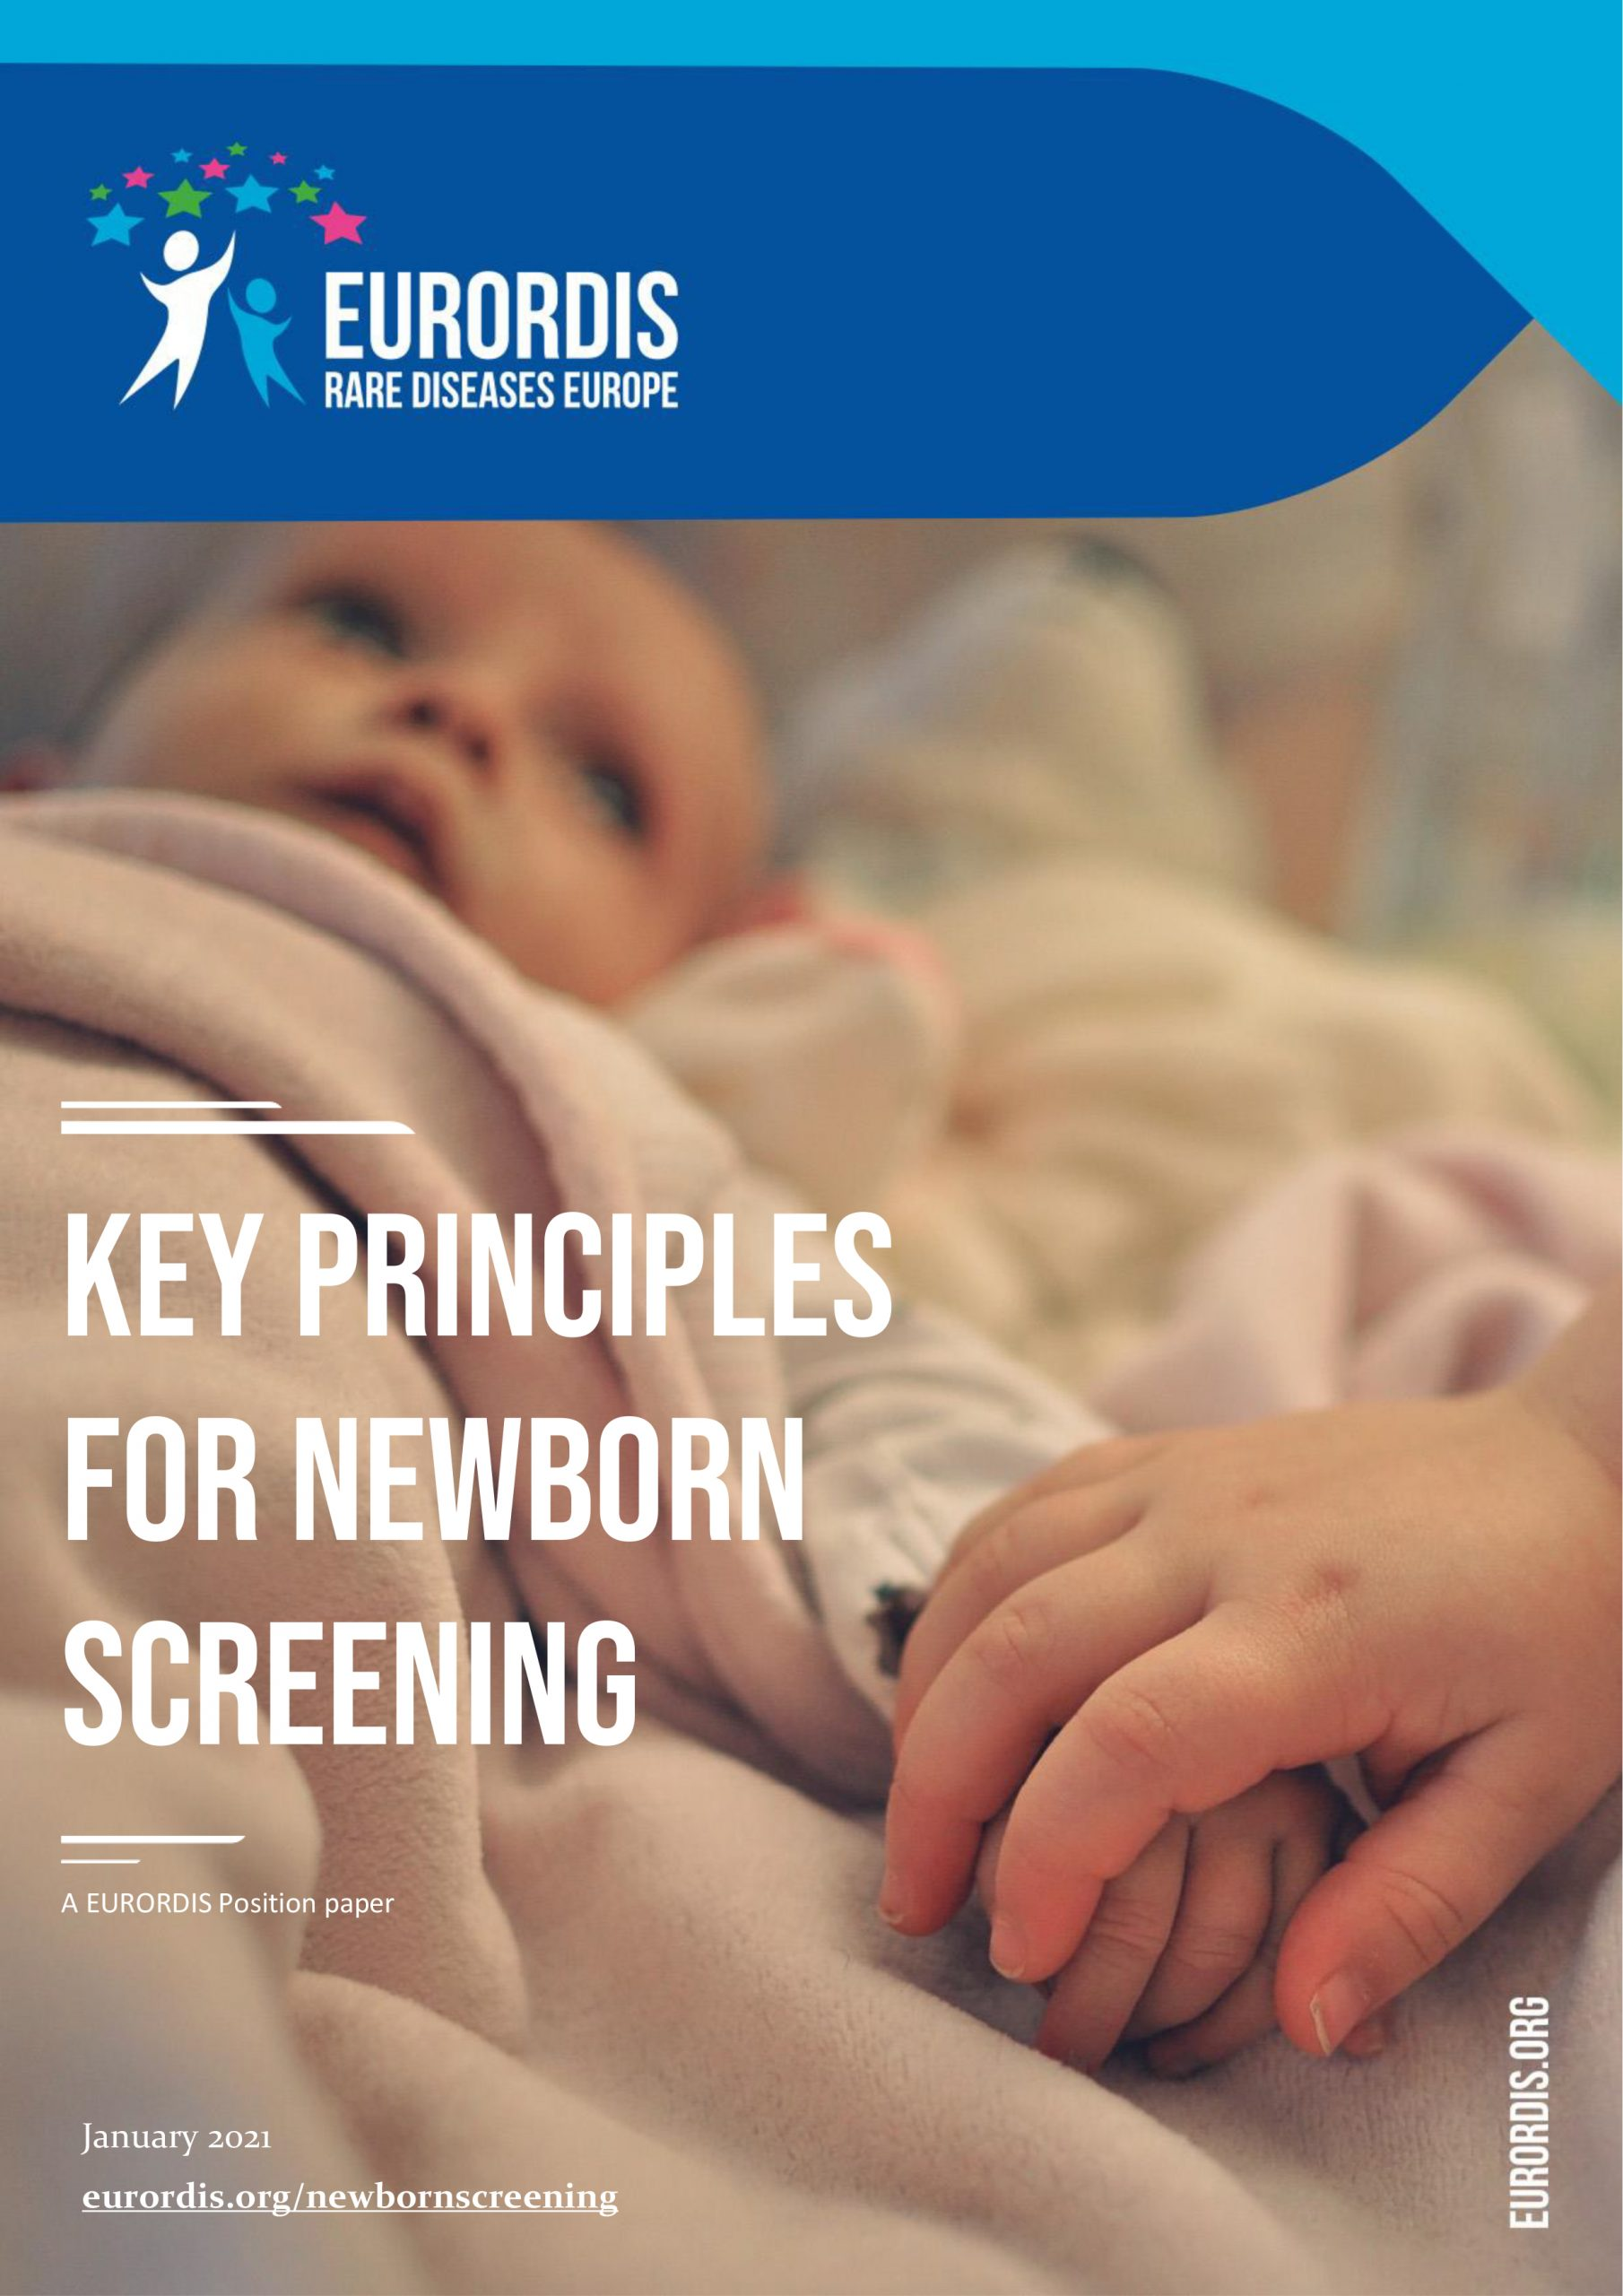 eurordis_Key-principles-for-newborn-screening-scaled Sleutelprincipes voor screening van pasgeborenen